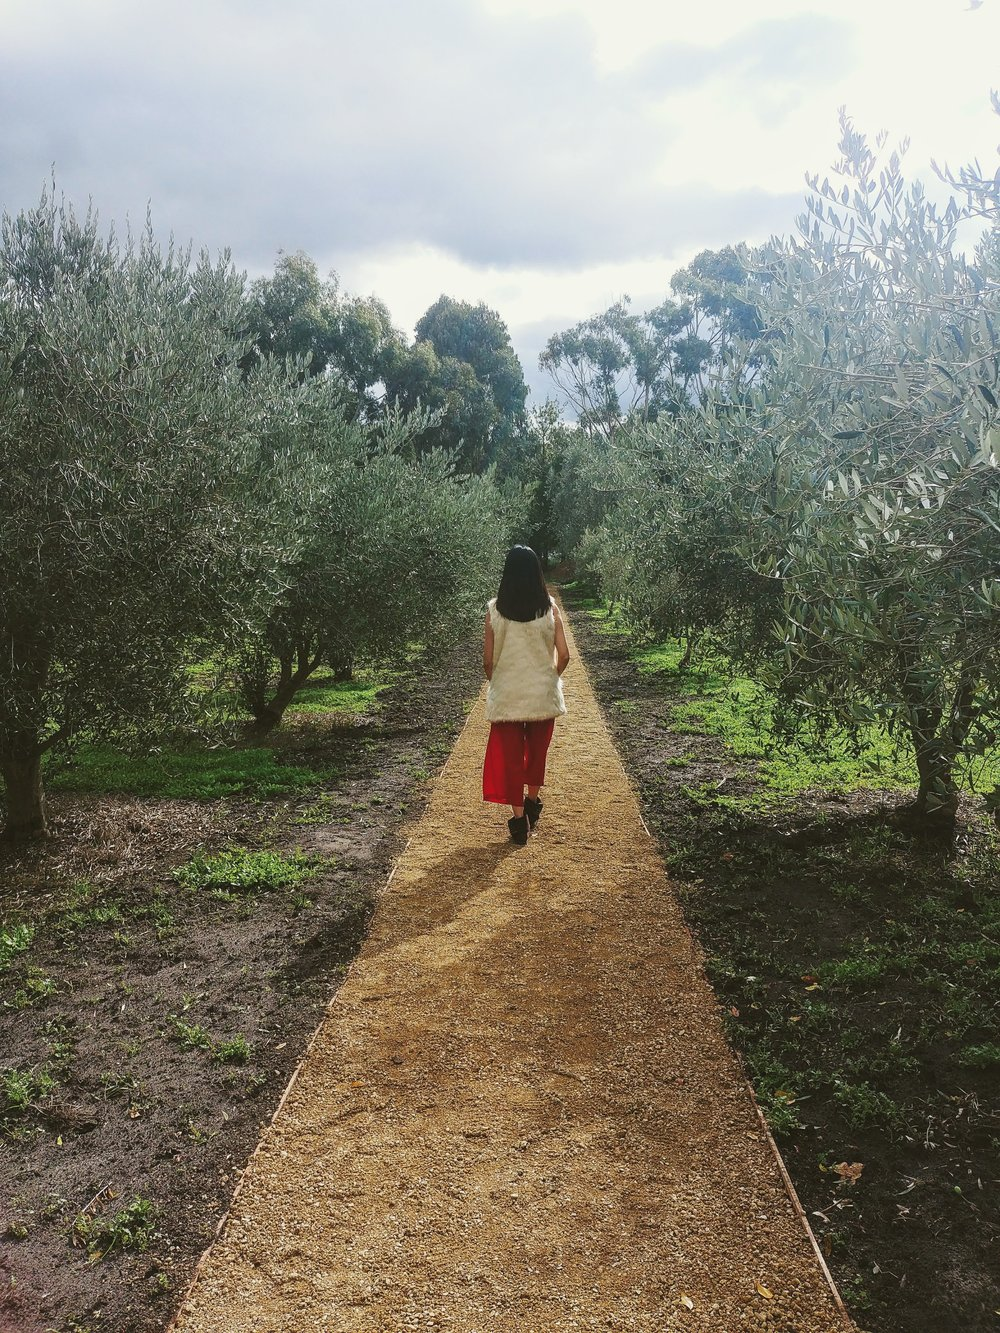 Arrived early so why not take a stroll along the line of olive trees